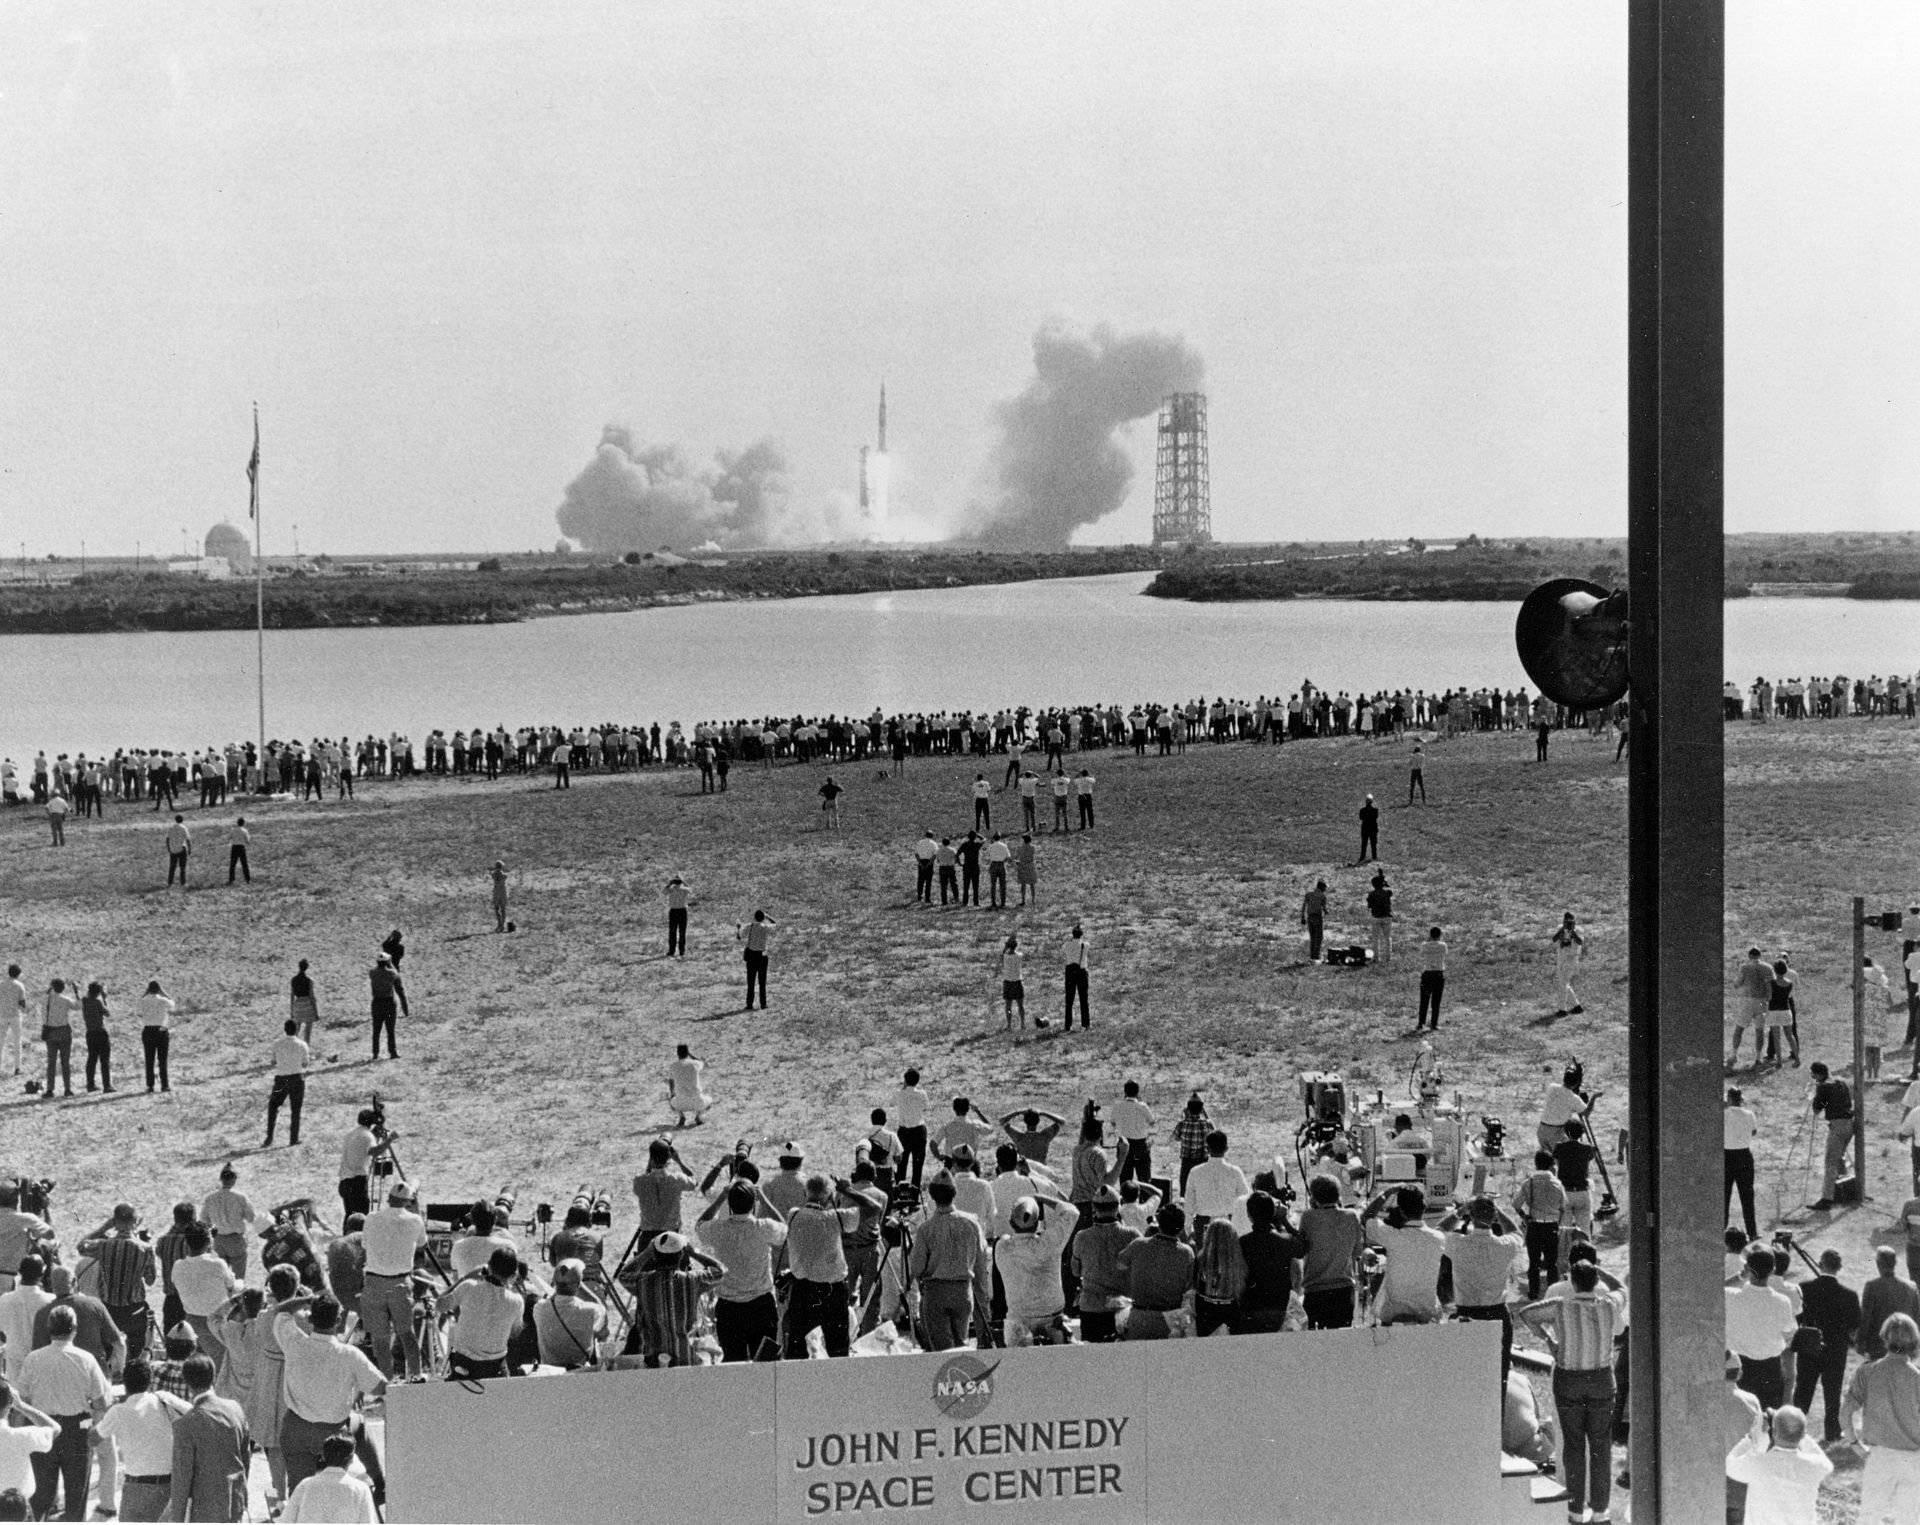 Thousands gathered at Kennedy Space Center on July 16, 1969, to watch the launch of Apollo 11. Four days later, on July 20, Neil Armstrong and Buzz Aldrin took the first steps on the Moon. Courtesy Project Apollo 11 Archive.